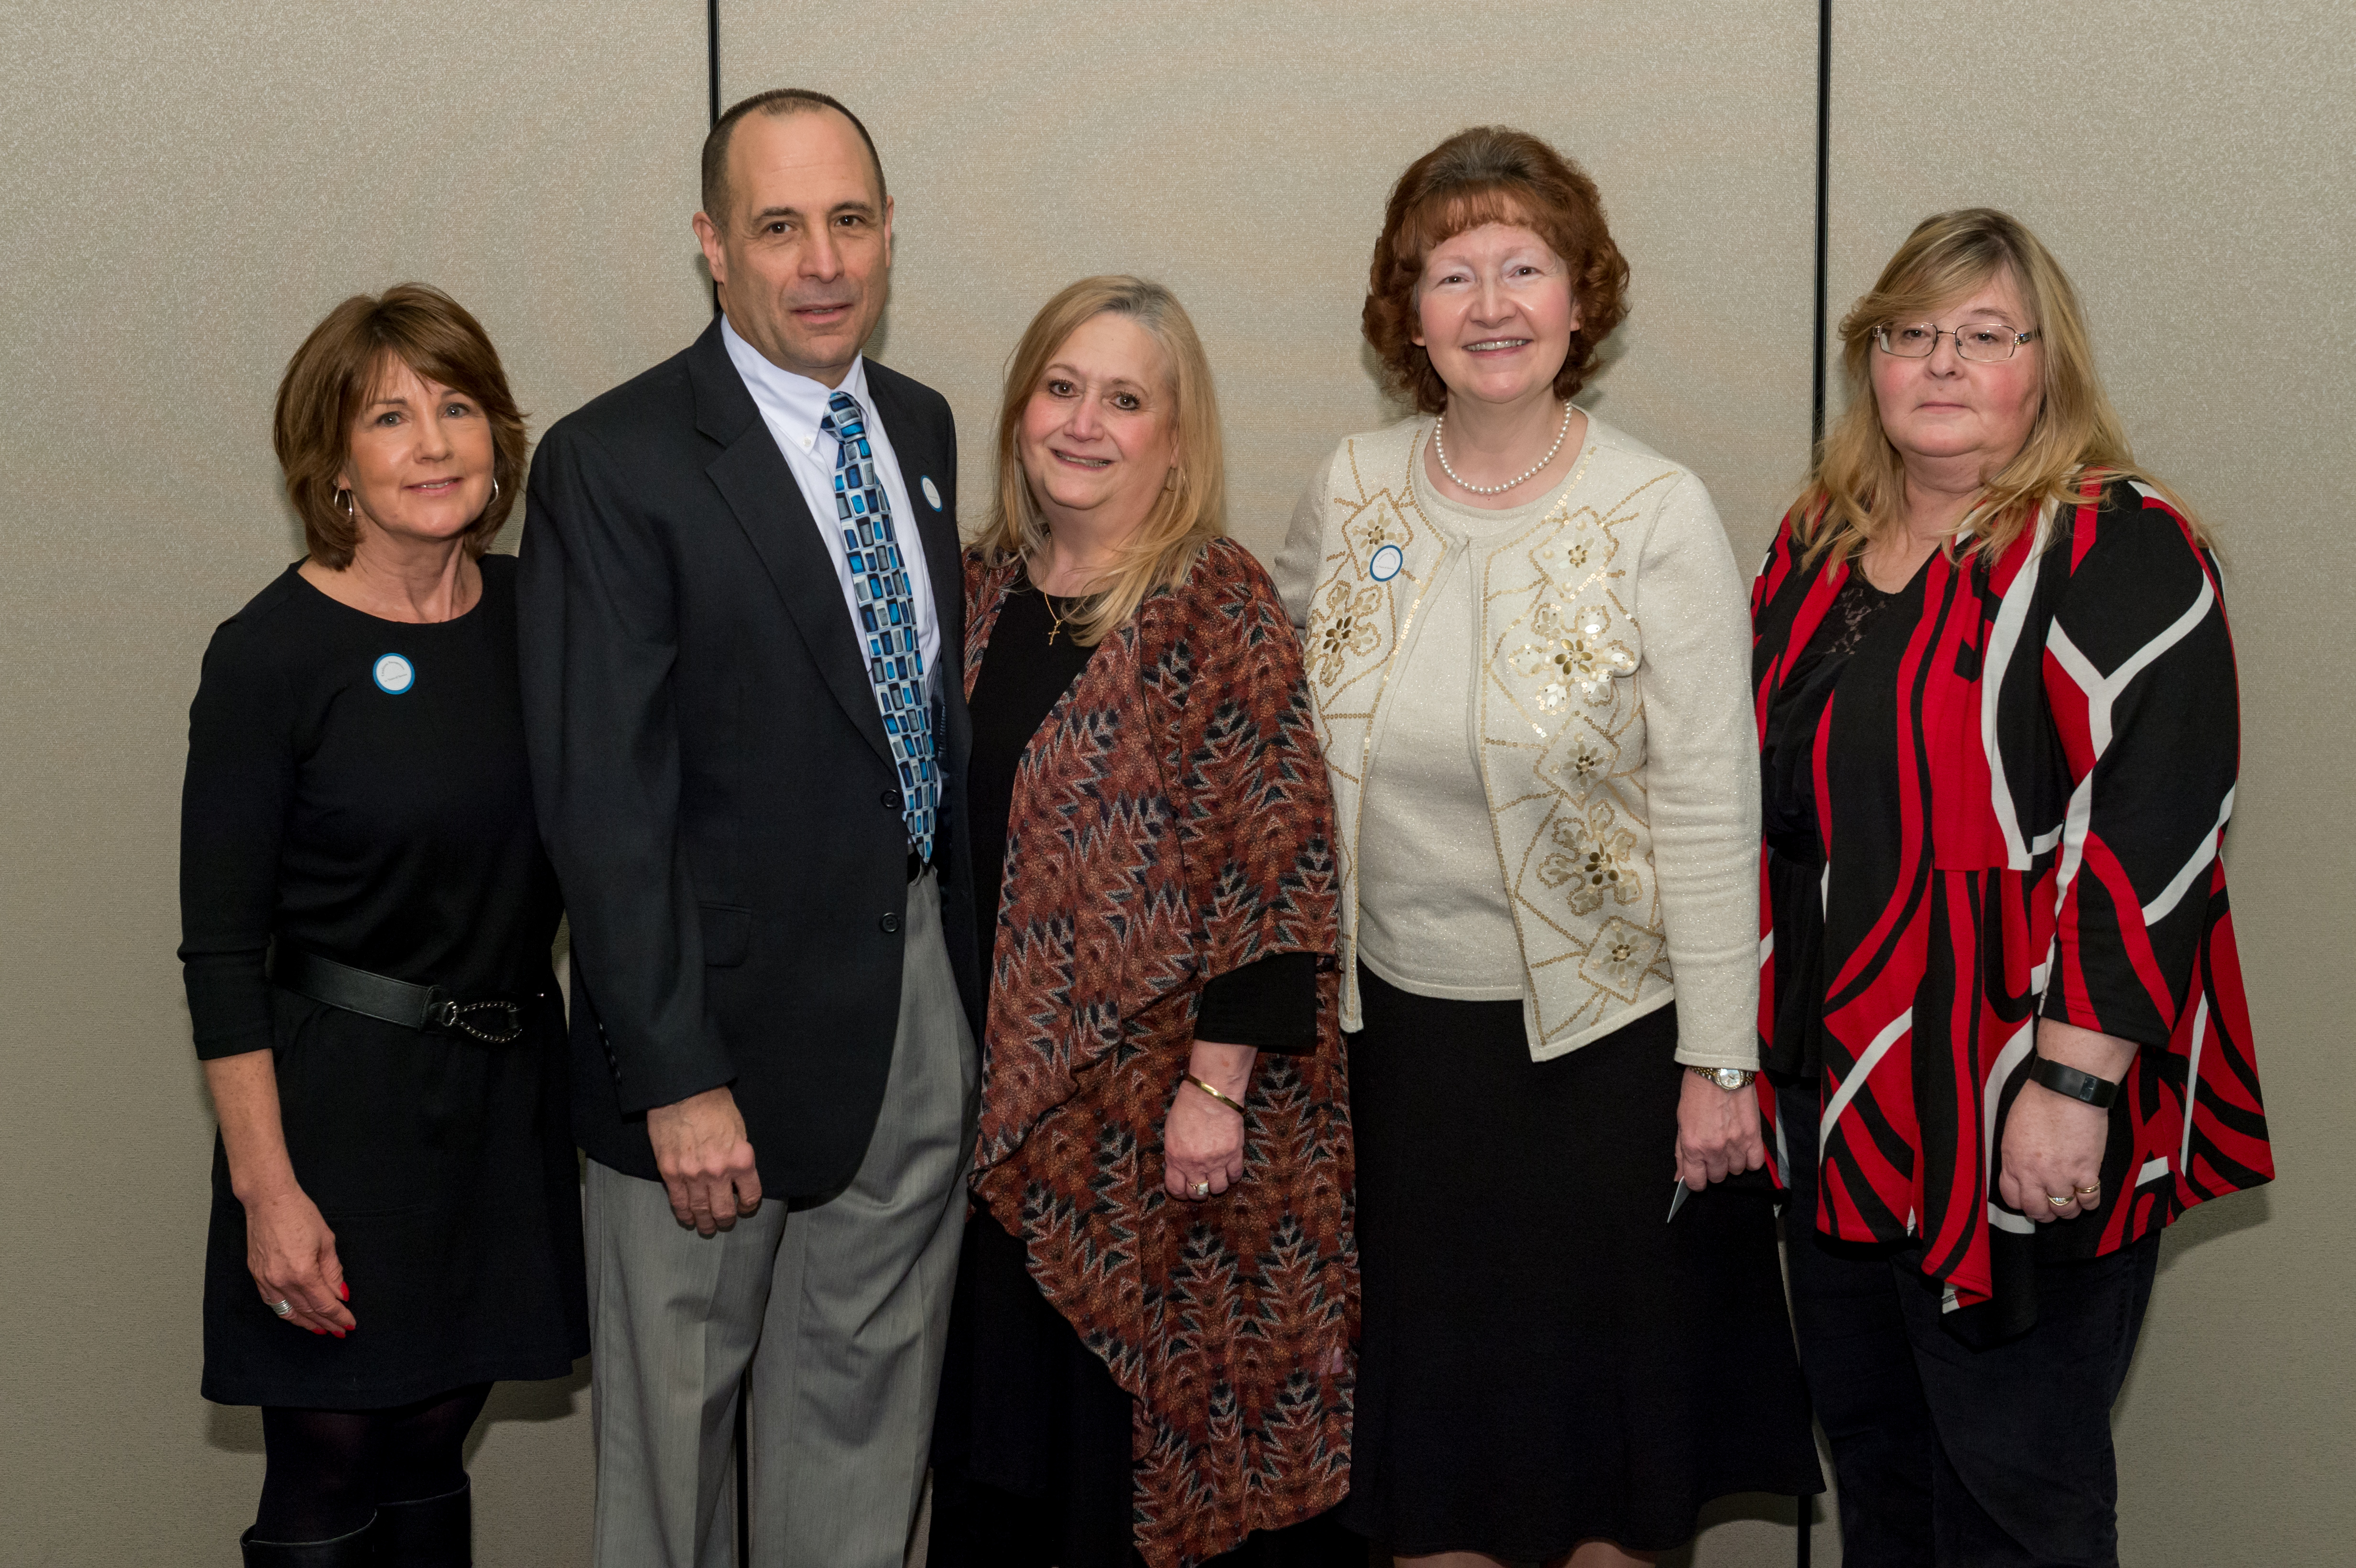 Employees with 20 years of service (left to right) Mary Shick, Rey Notareschi, Margaret Sanders, Deborah Myers and Deborah Tummel